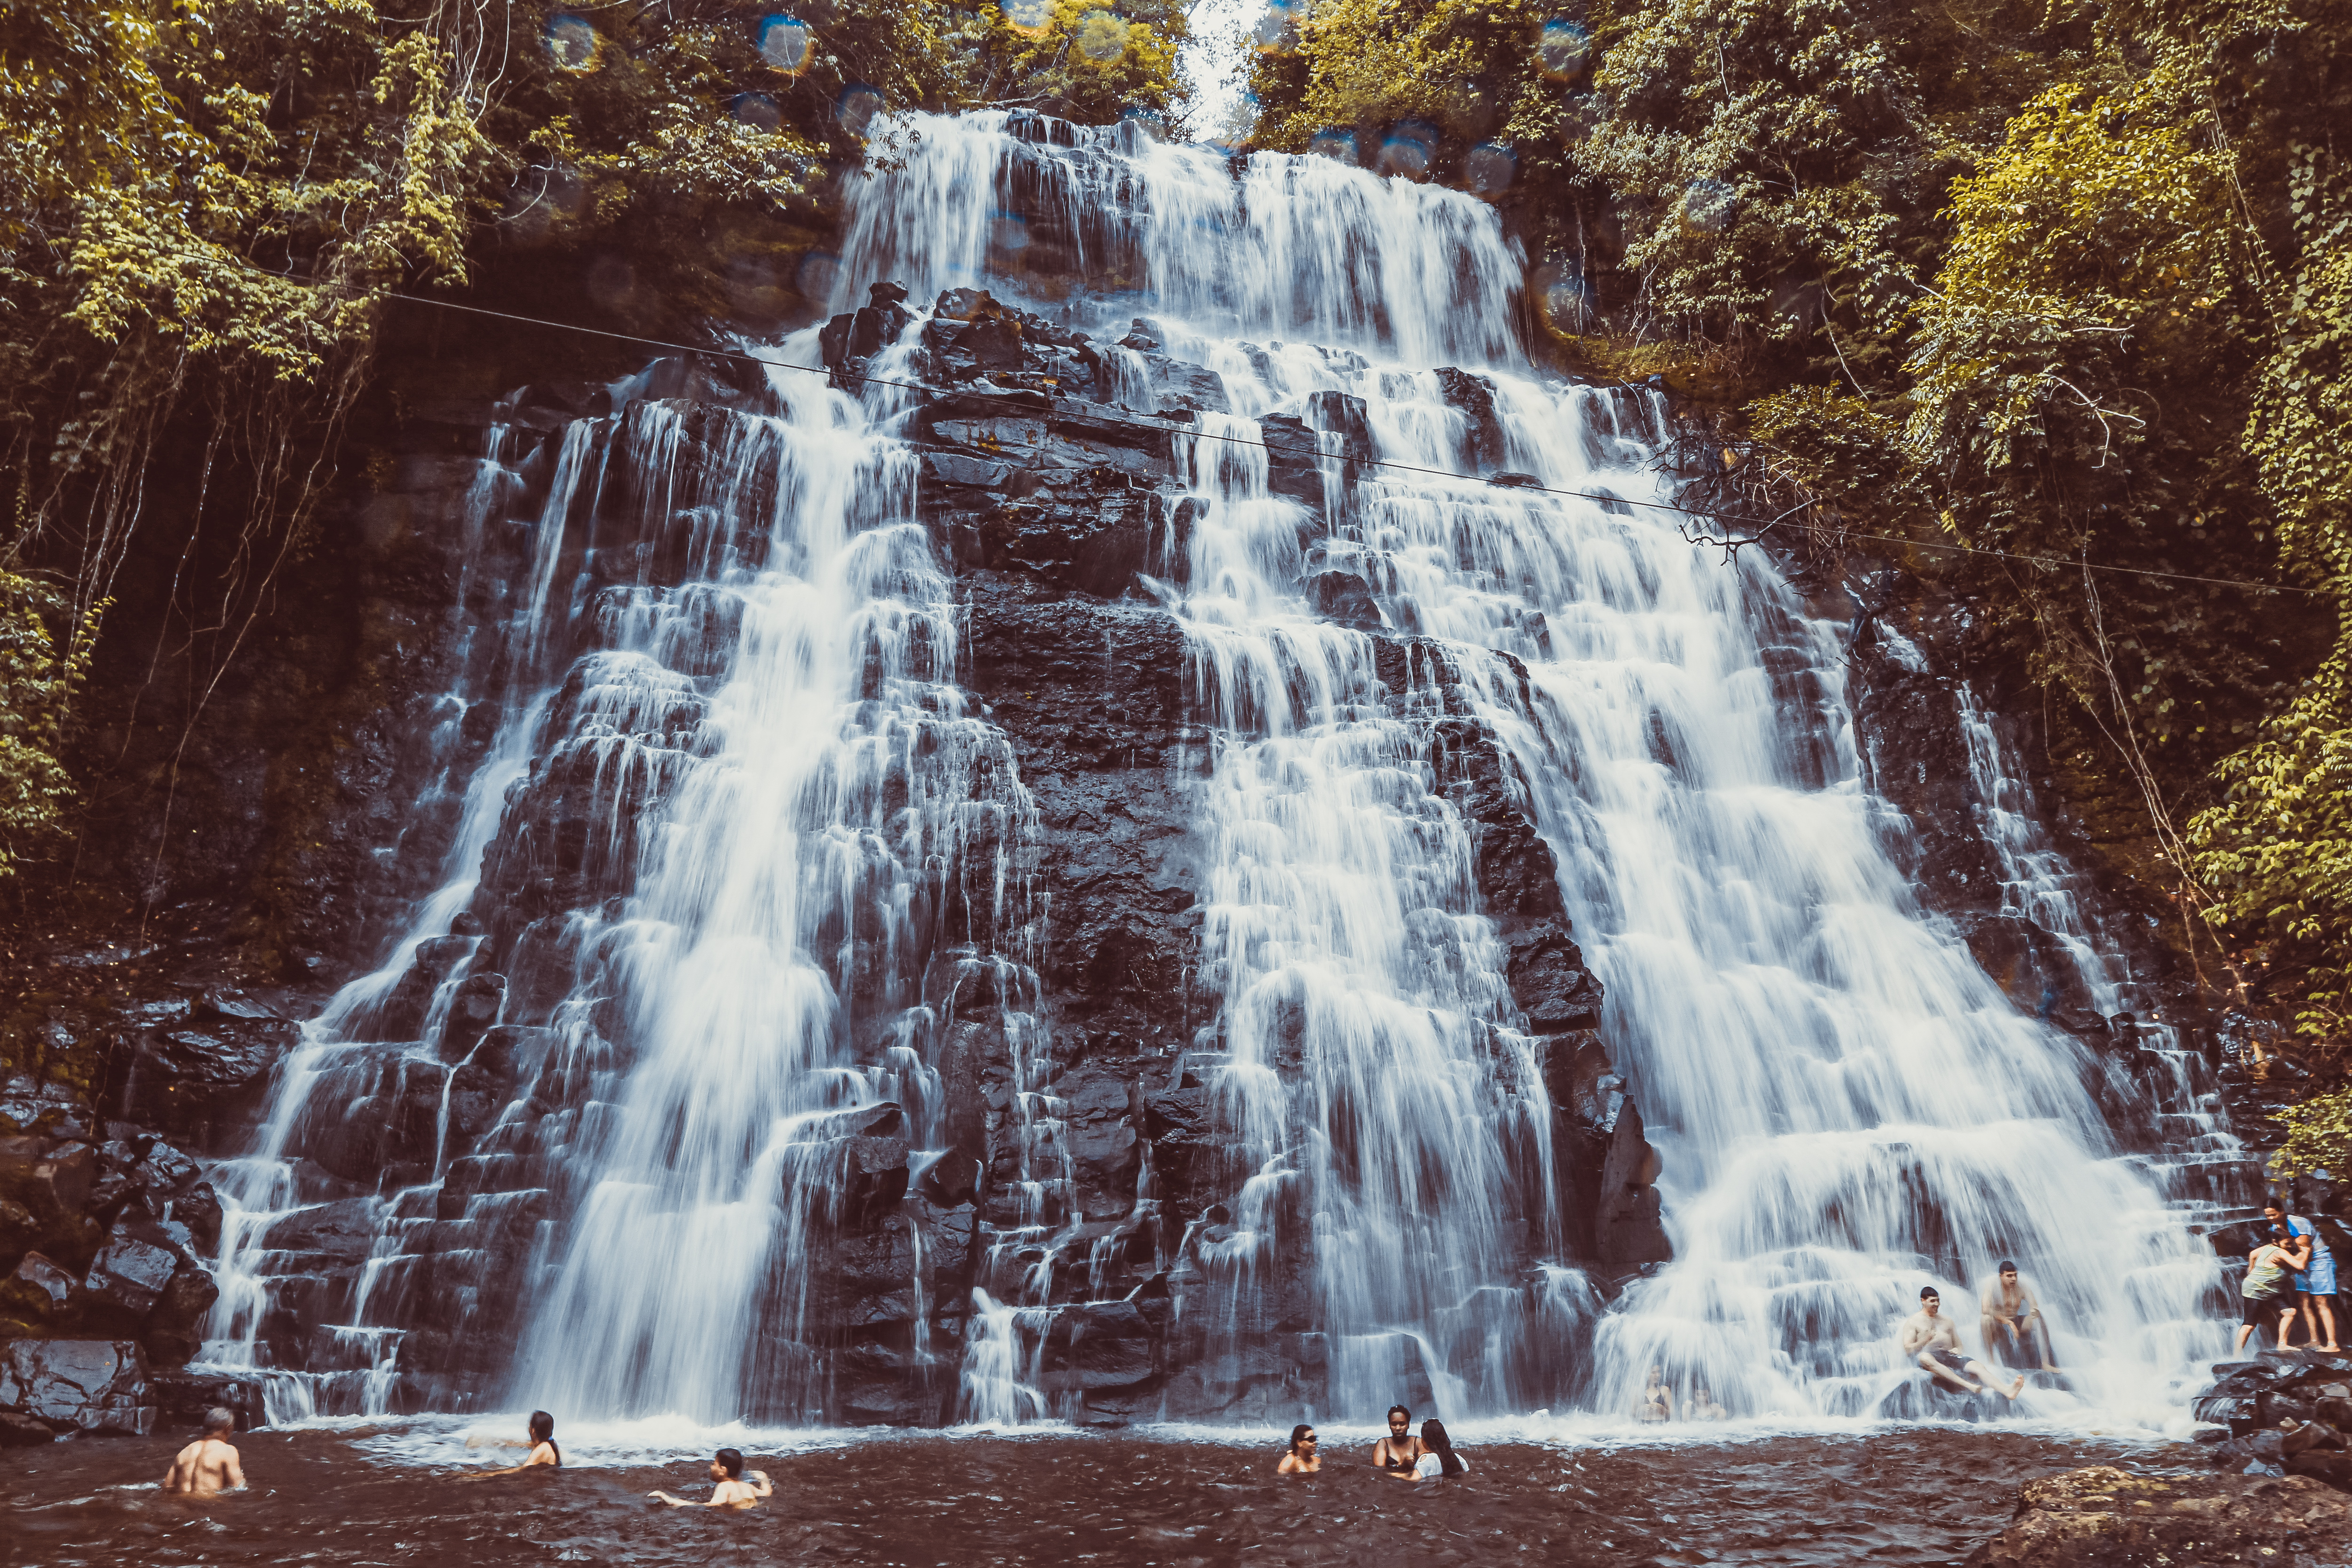 Time-Lapse Photography of People Near Waterfalls